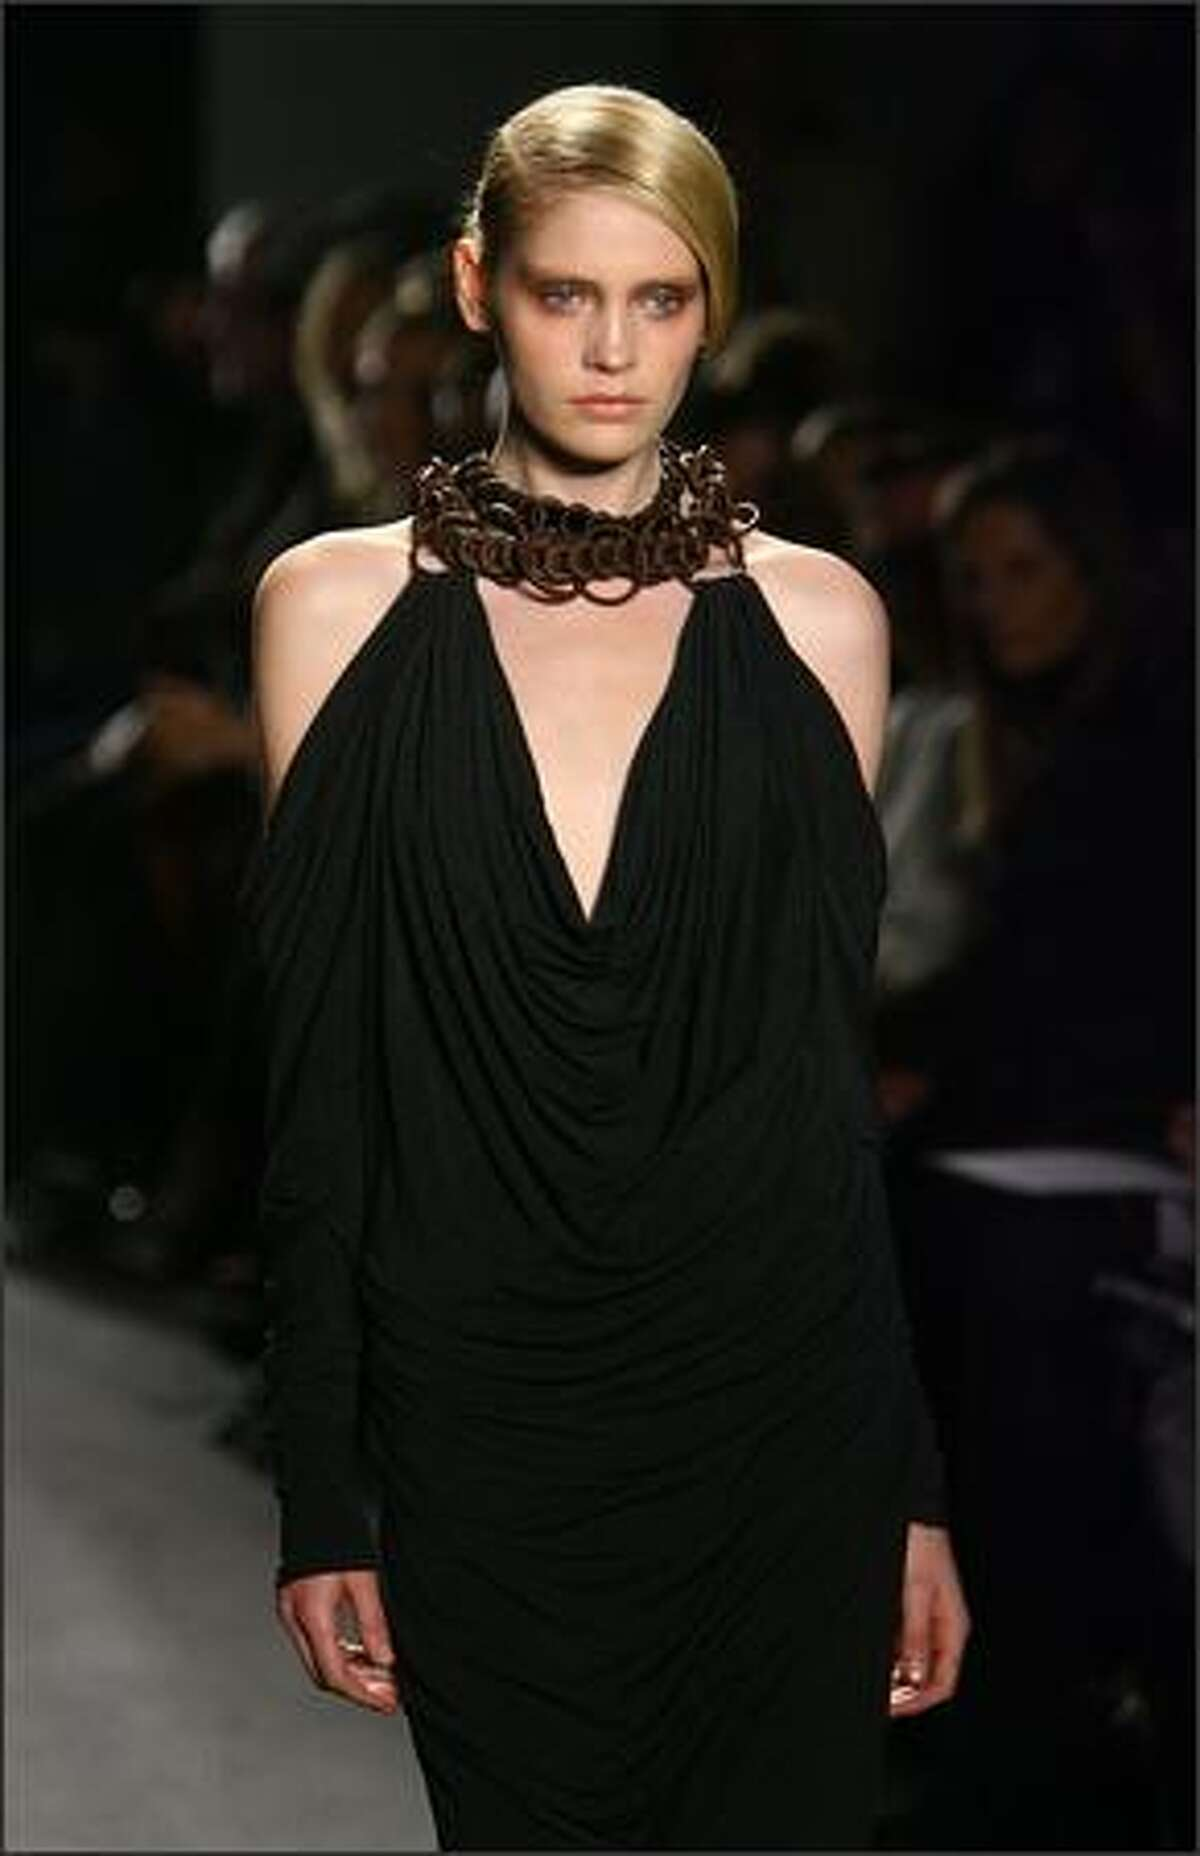 A model walks the runway at the Donna Karan Collection Fall 2009 fashion show during Mercedes-Benz Fashion Week in New York City.